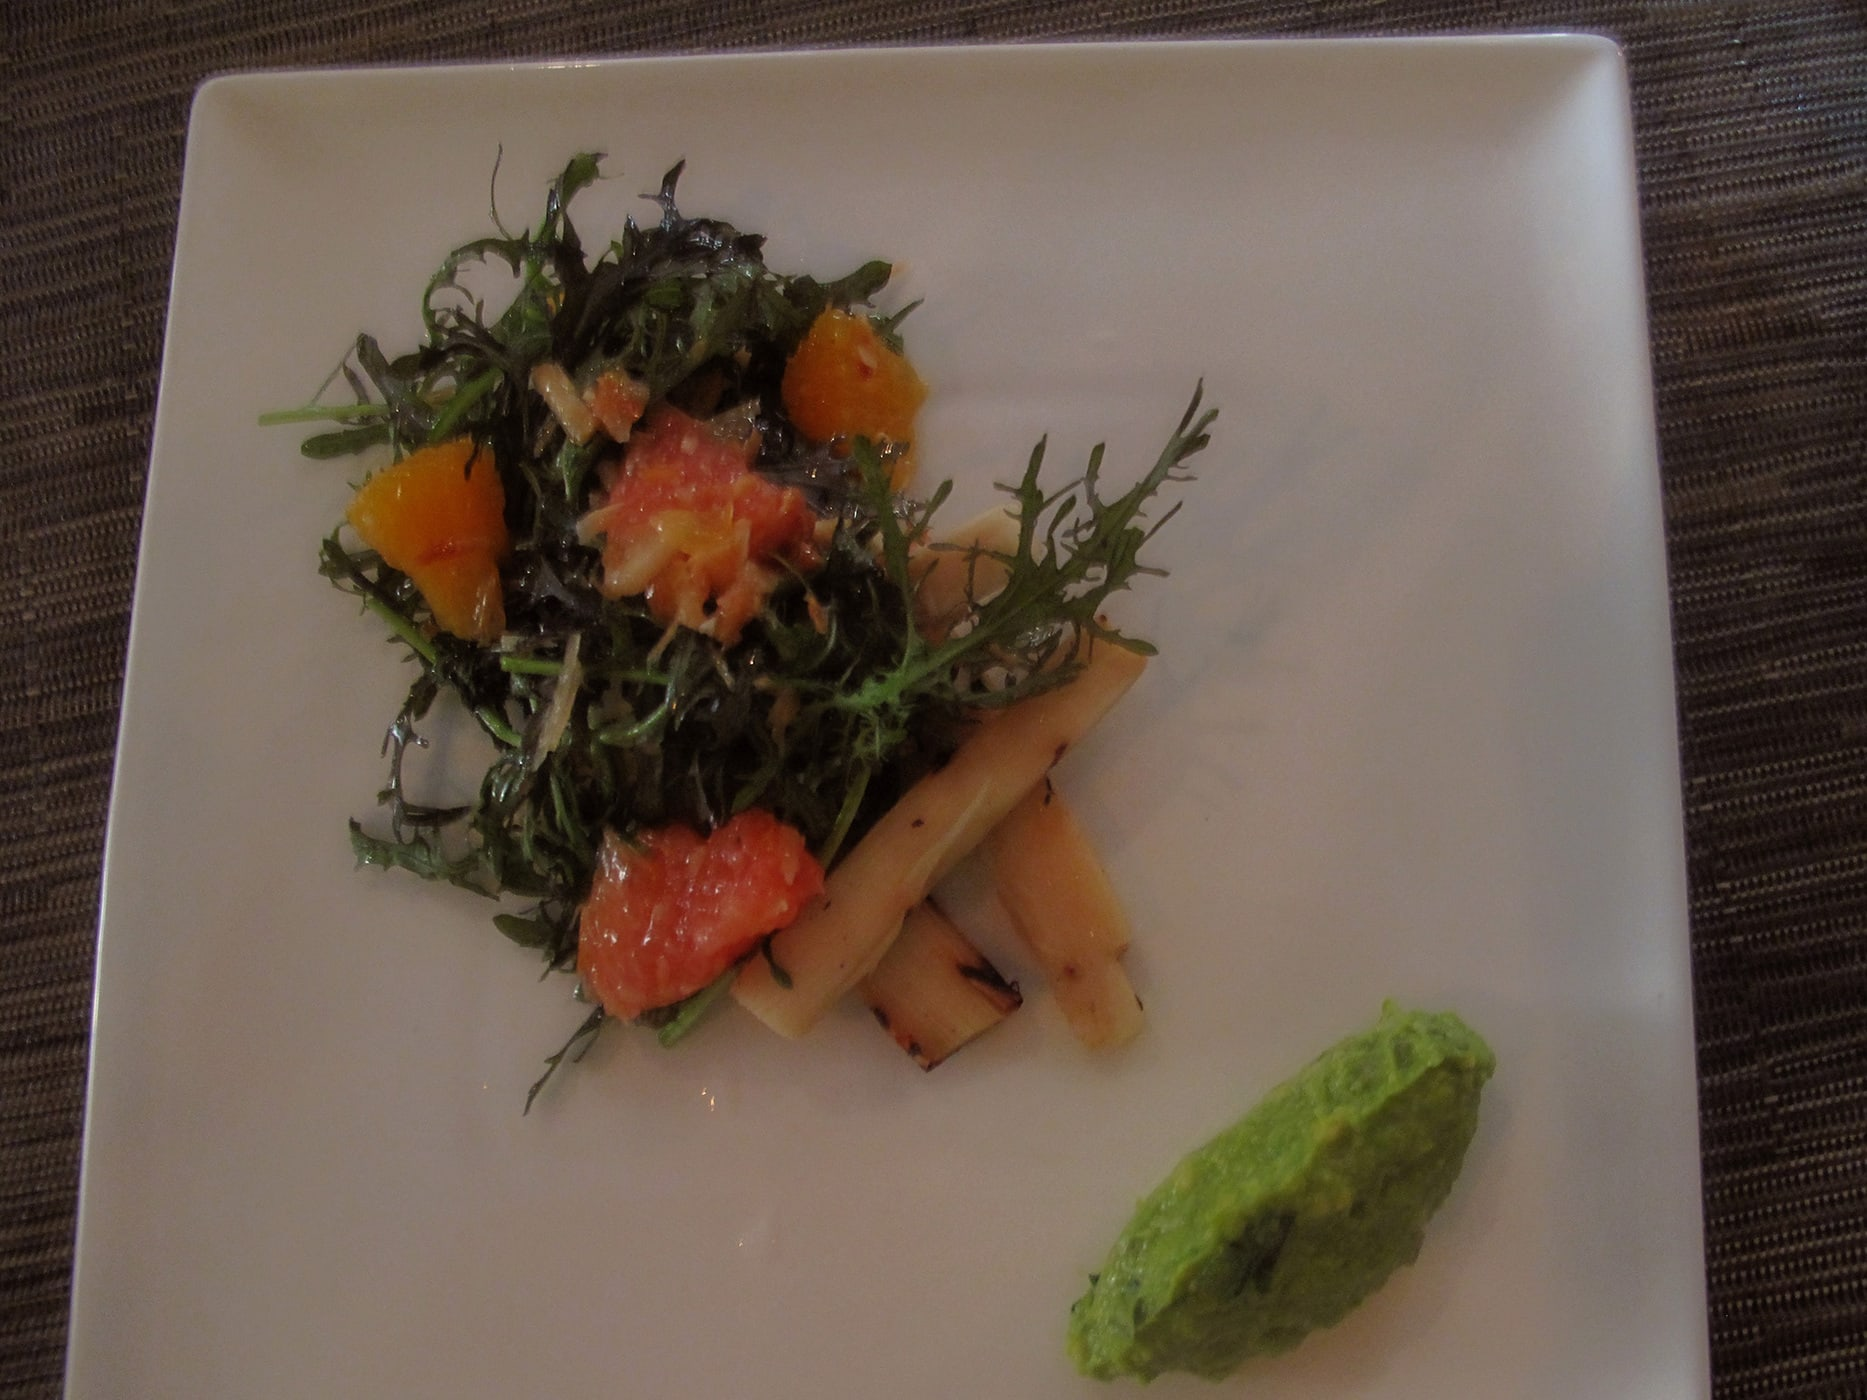 Eat vegetarian for a month - Grilled Heart of Palm and citrus salad with a little guacamole at Green Zebra restaurant in Chicago, Illinois